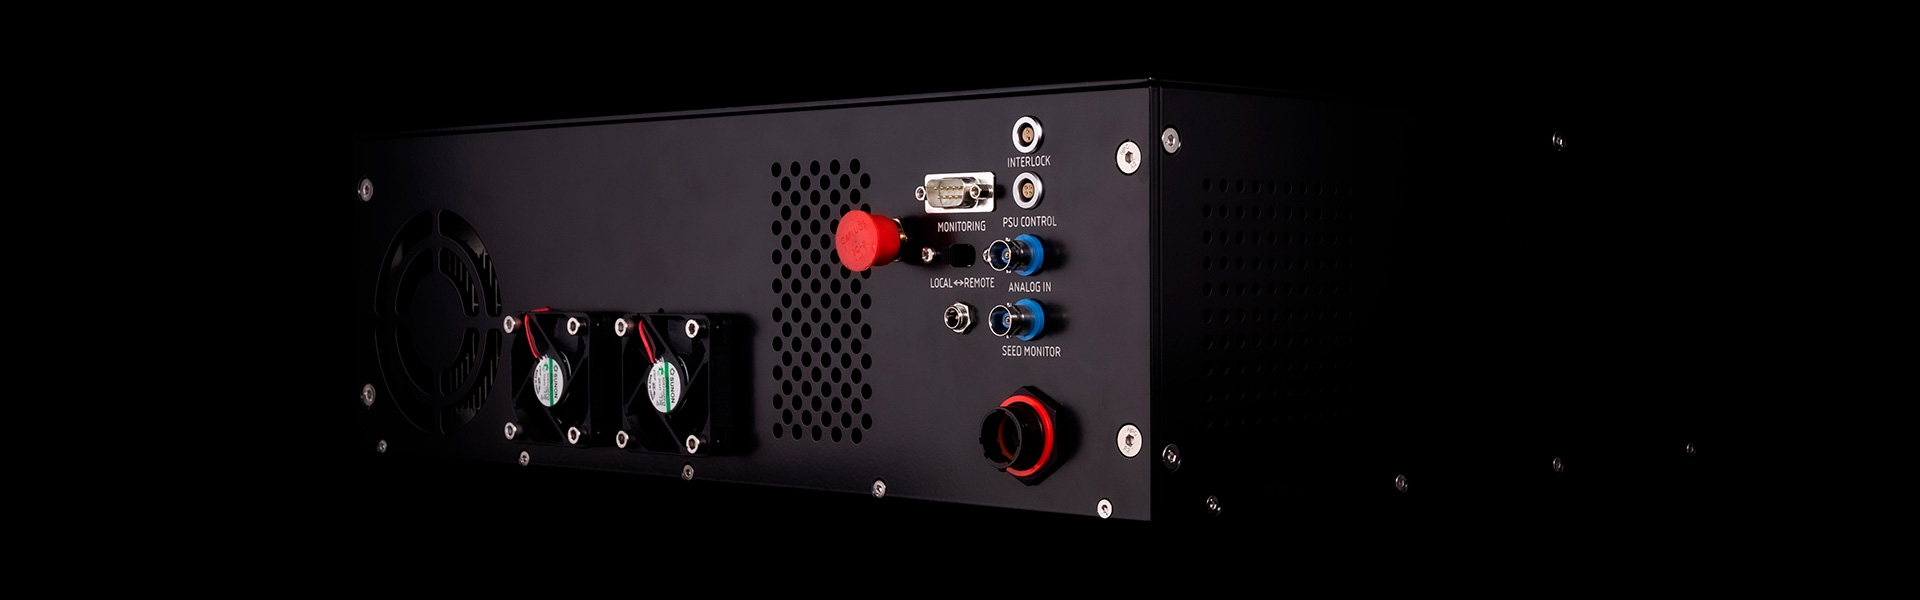 Back of the amplifier - Azurlight systems